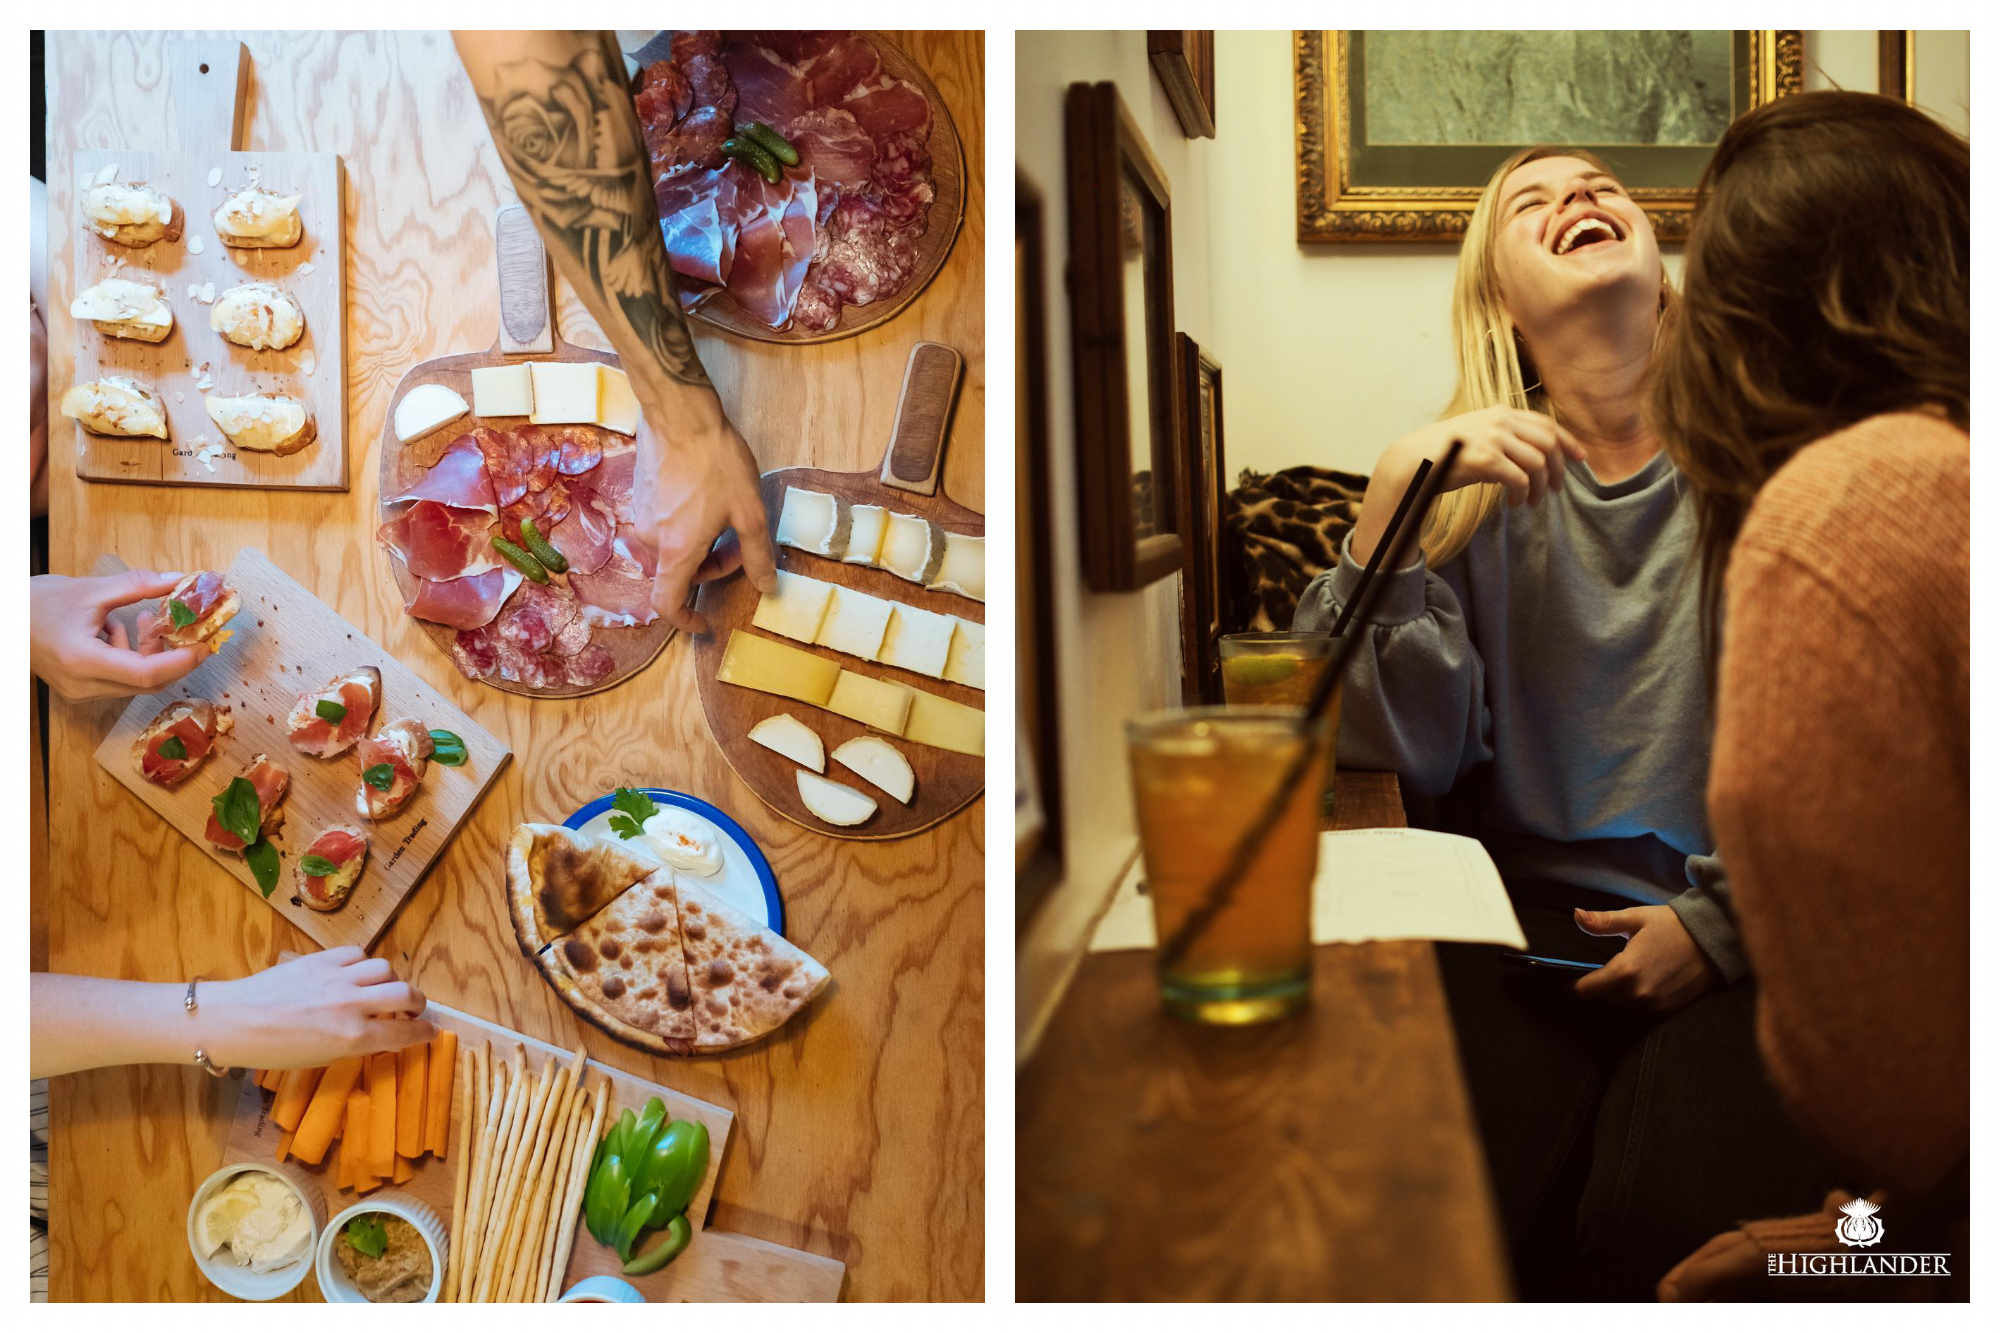 On left: Patrons of the Gossima Ping Pong Bar, in Paris' 11th arrondissement, descend on a sumptuous spread of cheese, charcuterie, bruschetta, and other shareable plates. On right: Two friends share a laugh at the trivia night hosted by The Highlander Scottish Bar in Paris' 6th arrondissement.